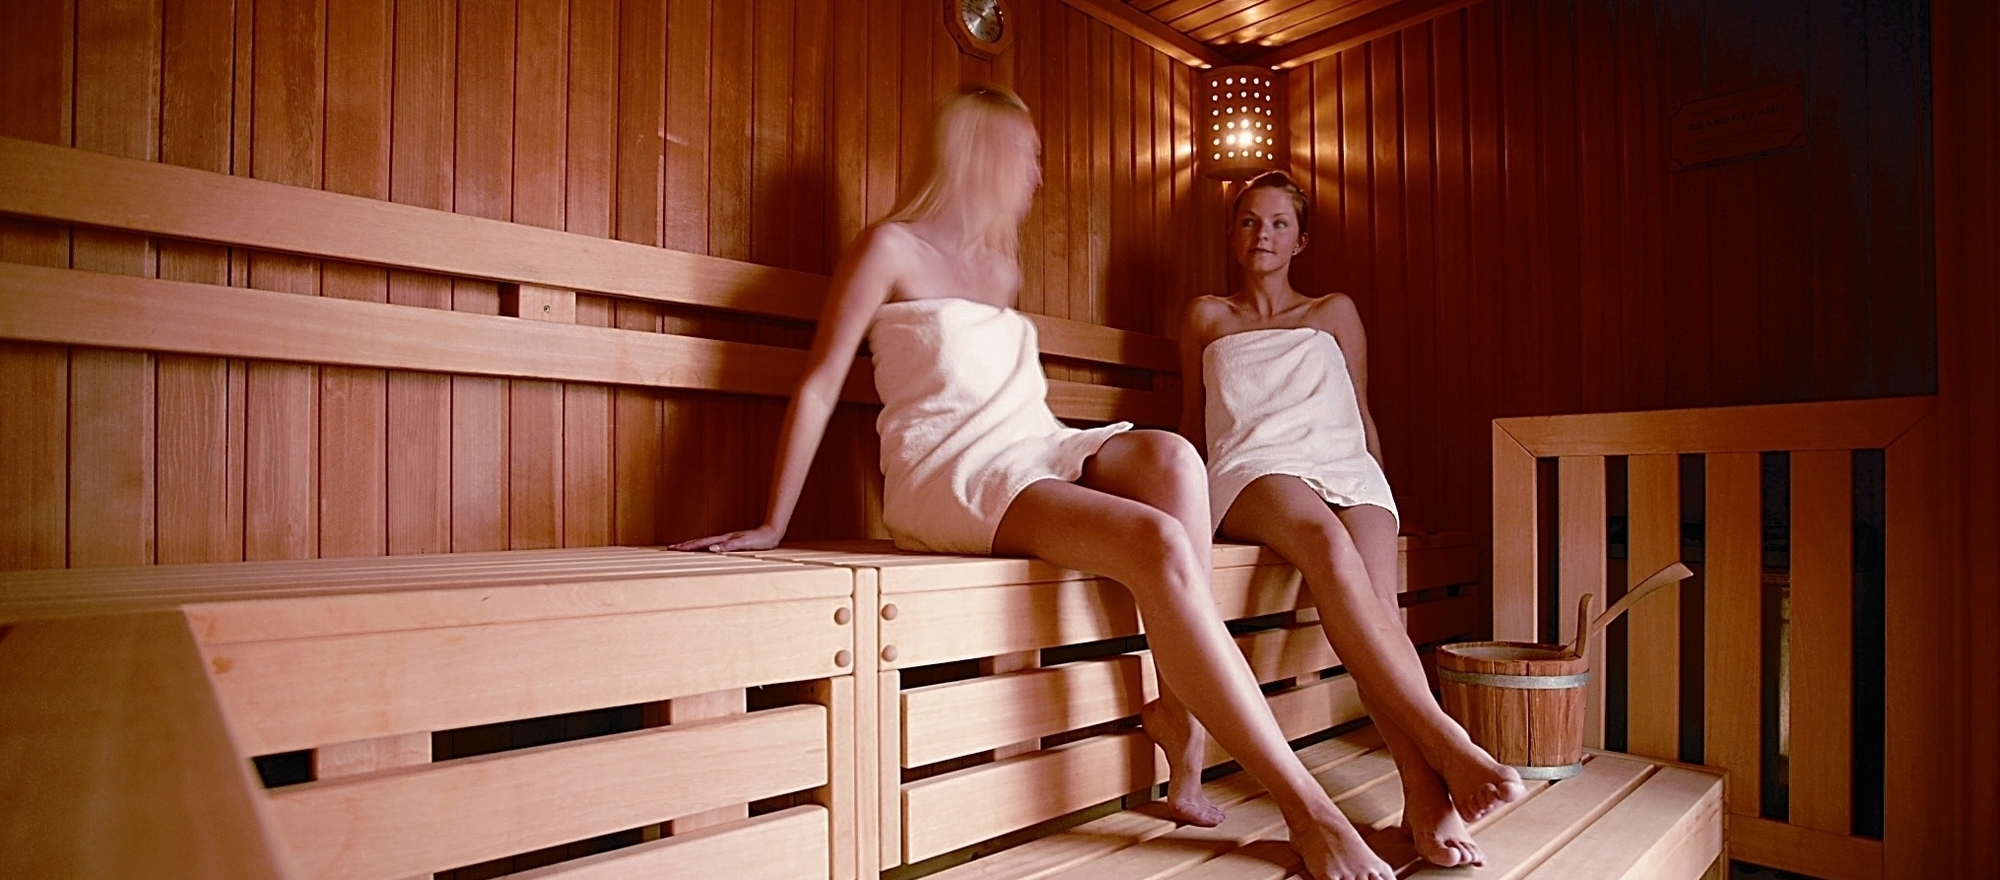 Oasis with sauna and steam bath at the 4-star hotel Ringhotel Appelbaum in Guetersloh